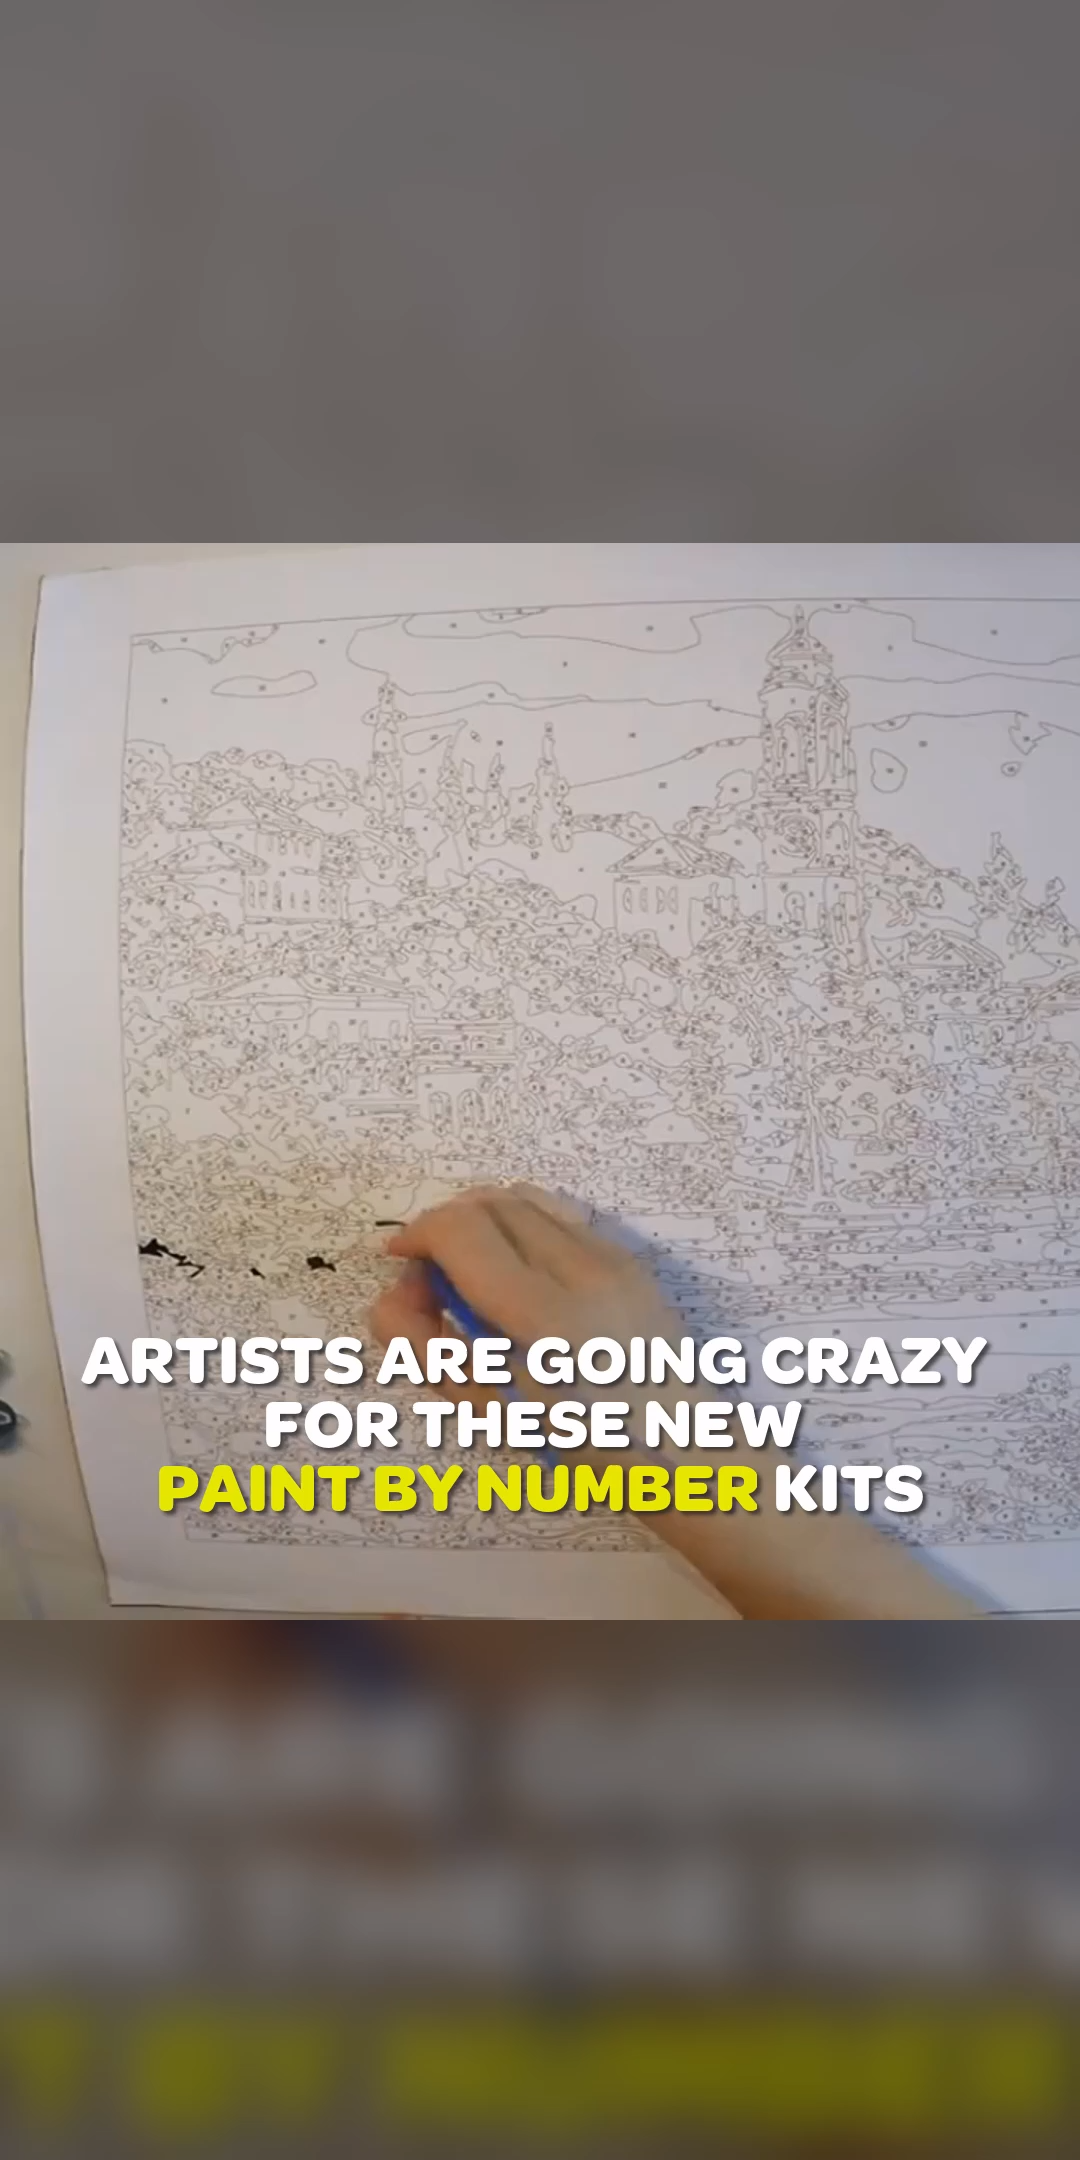 If you love to draw/paint, you have GOT to try these new Van-Go kits (for advanced artists).